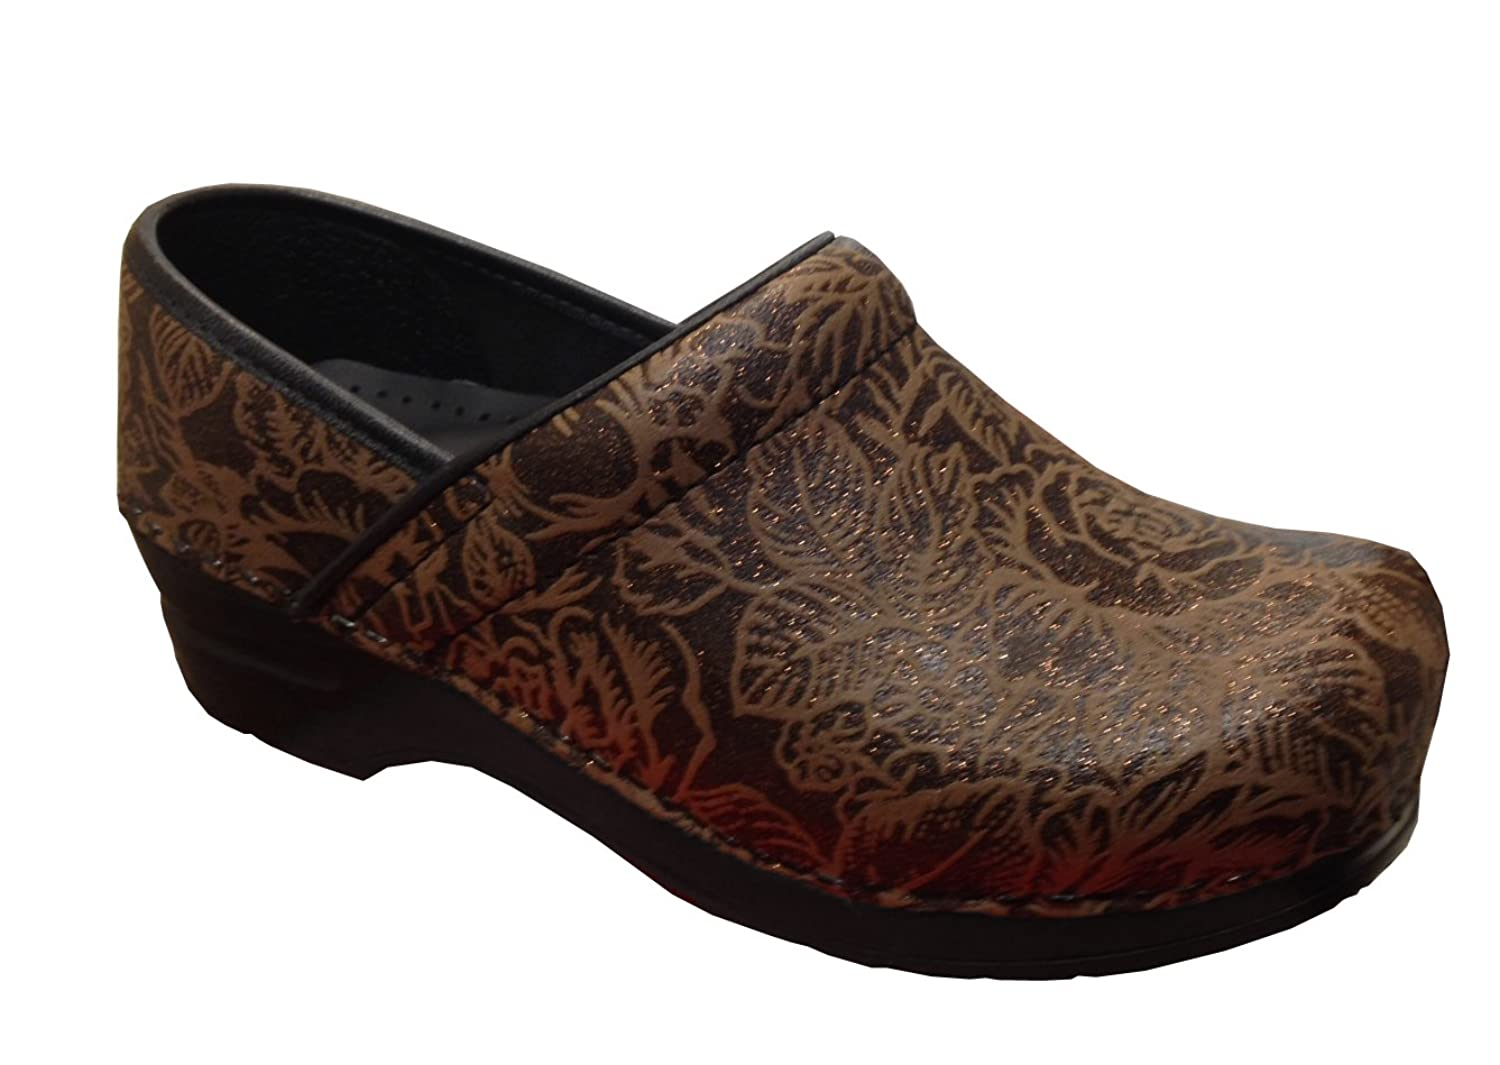 New Sanita Women's Professional Clog